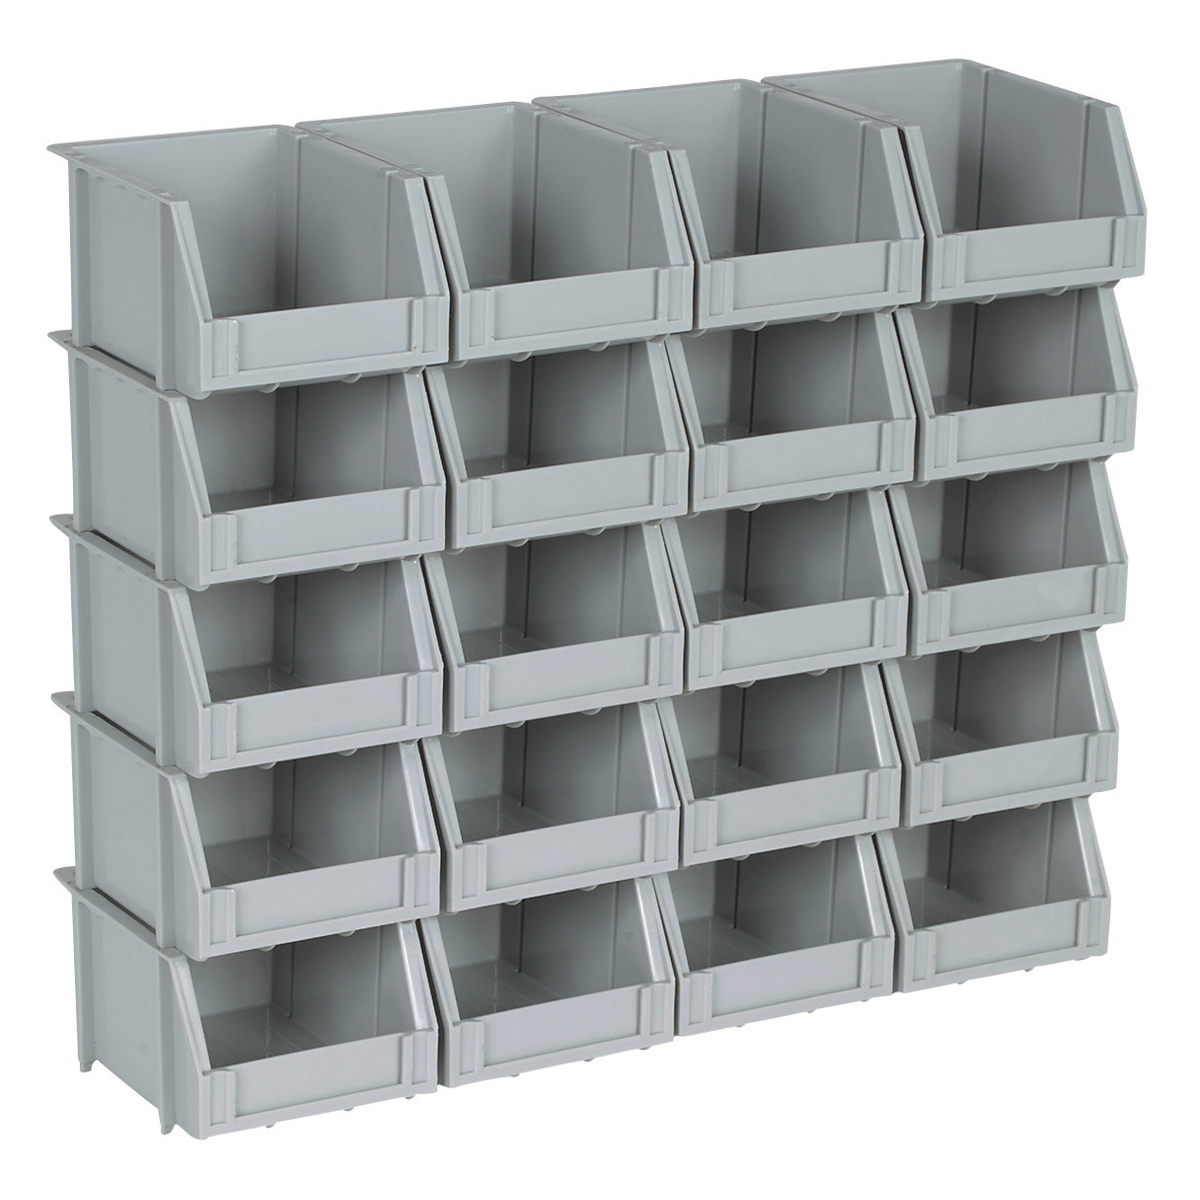 20 piece poly bins and rails - Small Storage Containers